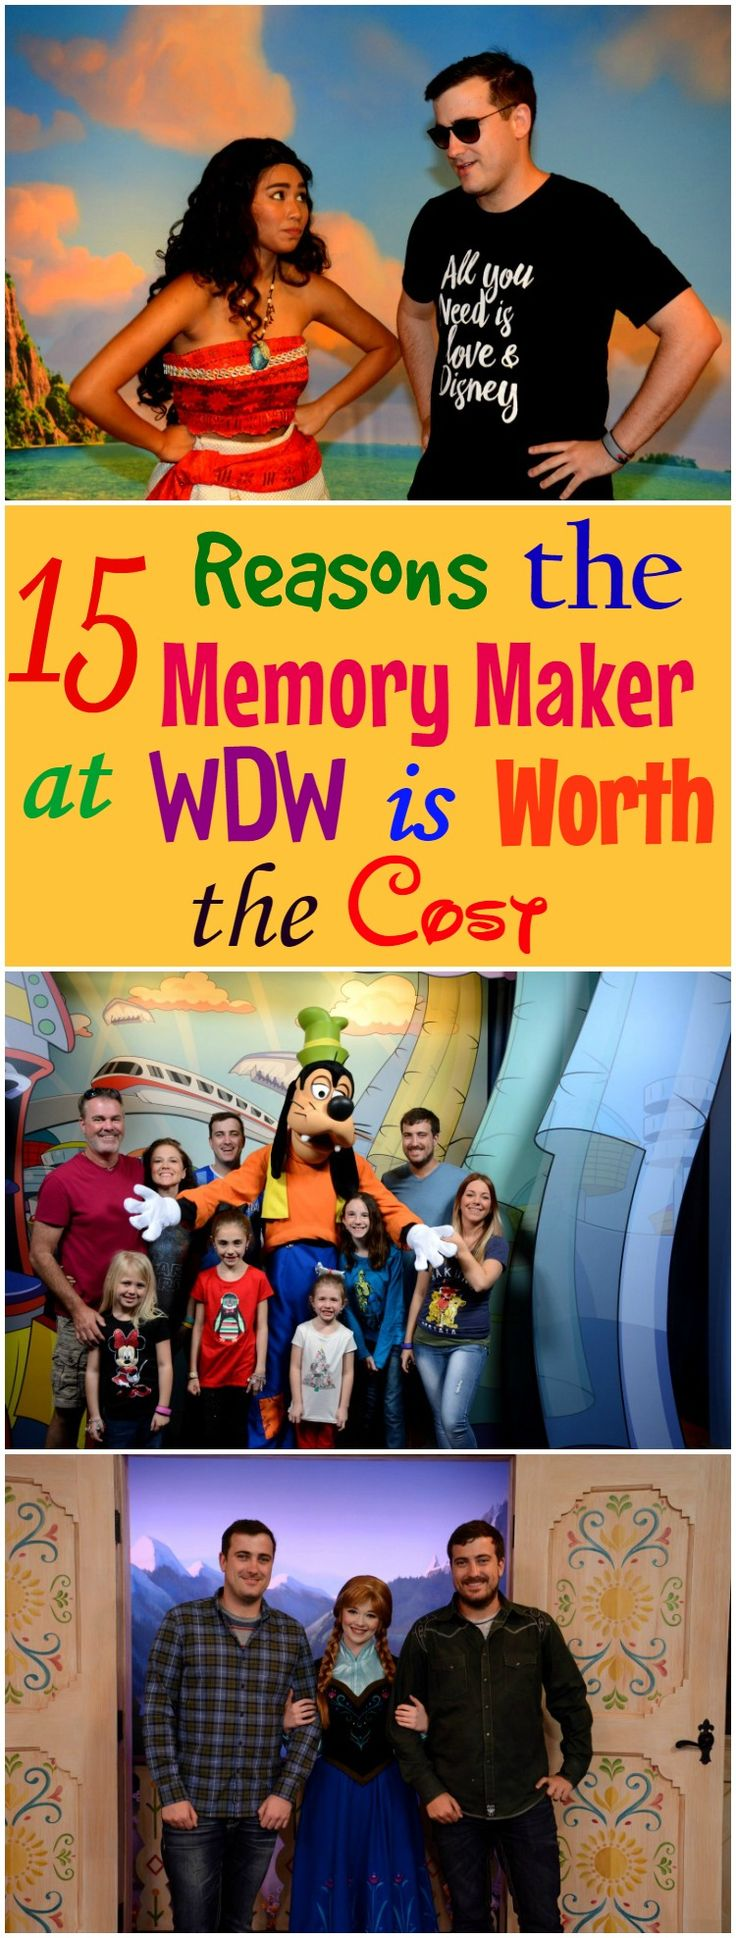 The Memory Maker at Walt Disney World is a smart buy. Here are some reasons why I will always add it to my Disney trips.